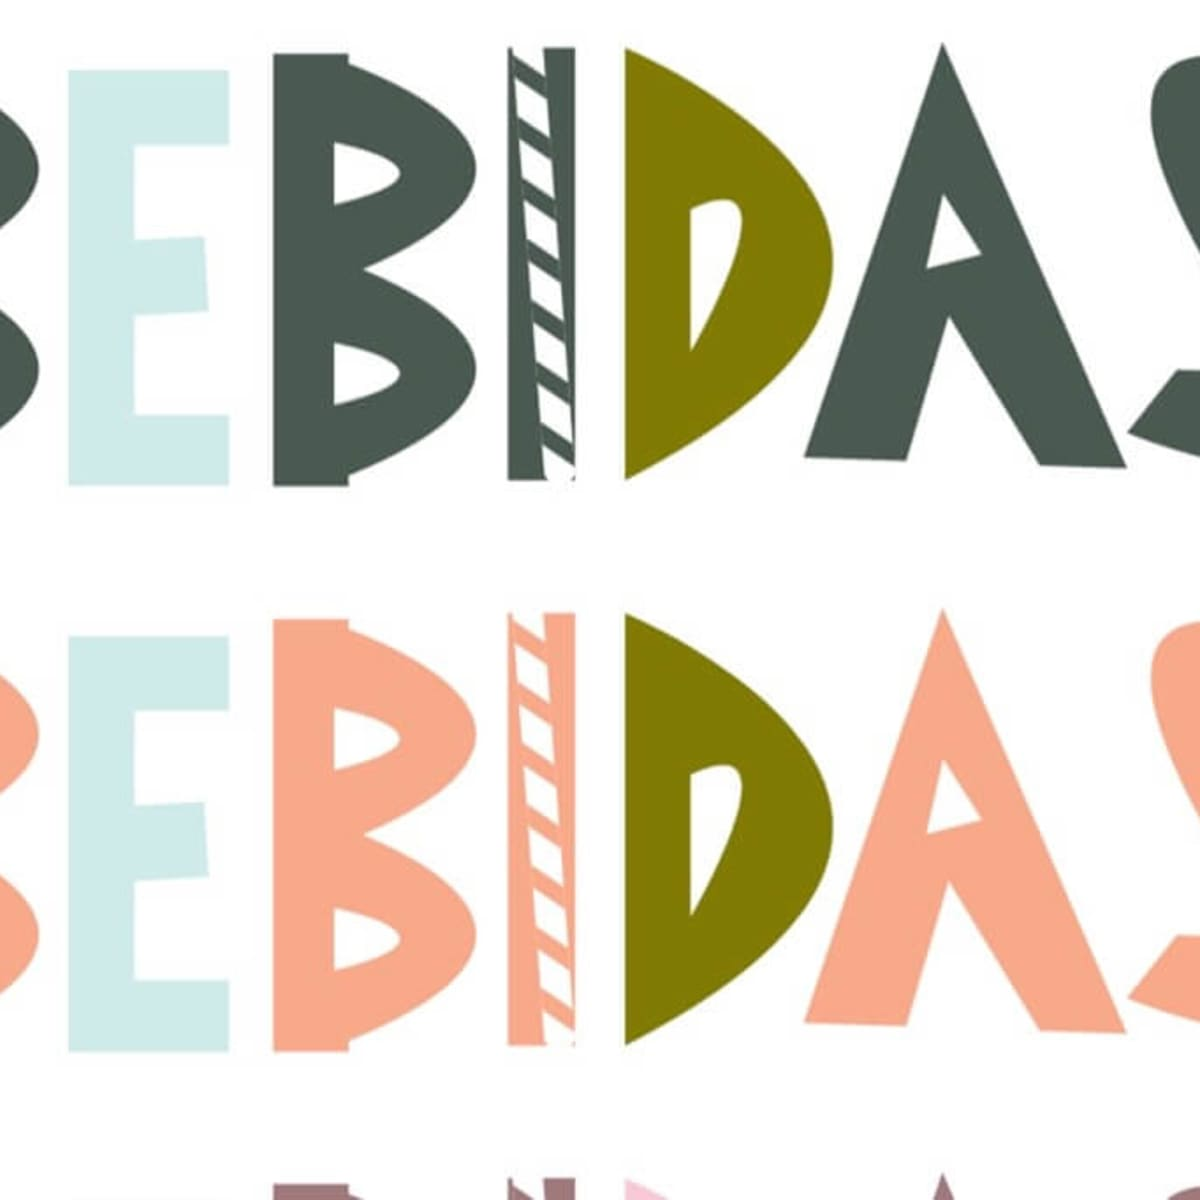 Bebidas juice bar logo